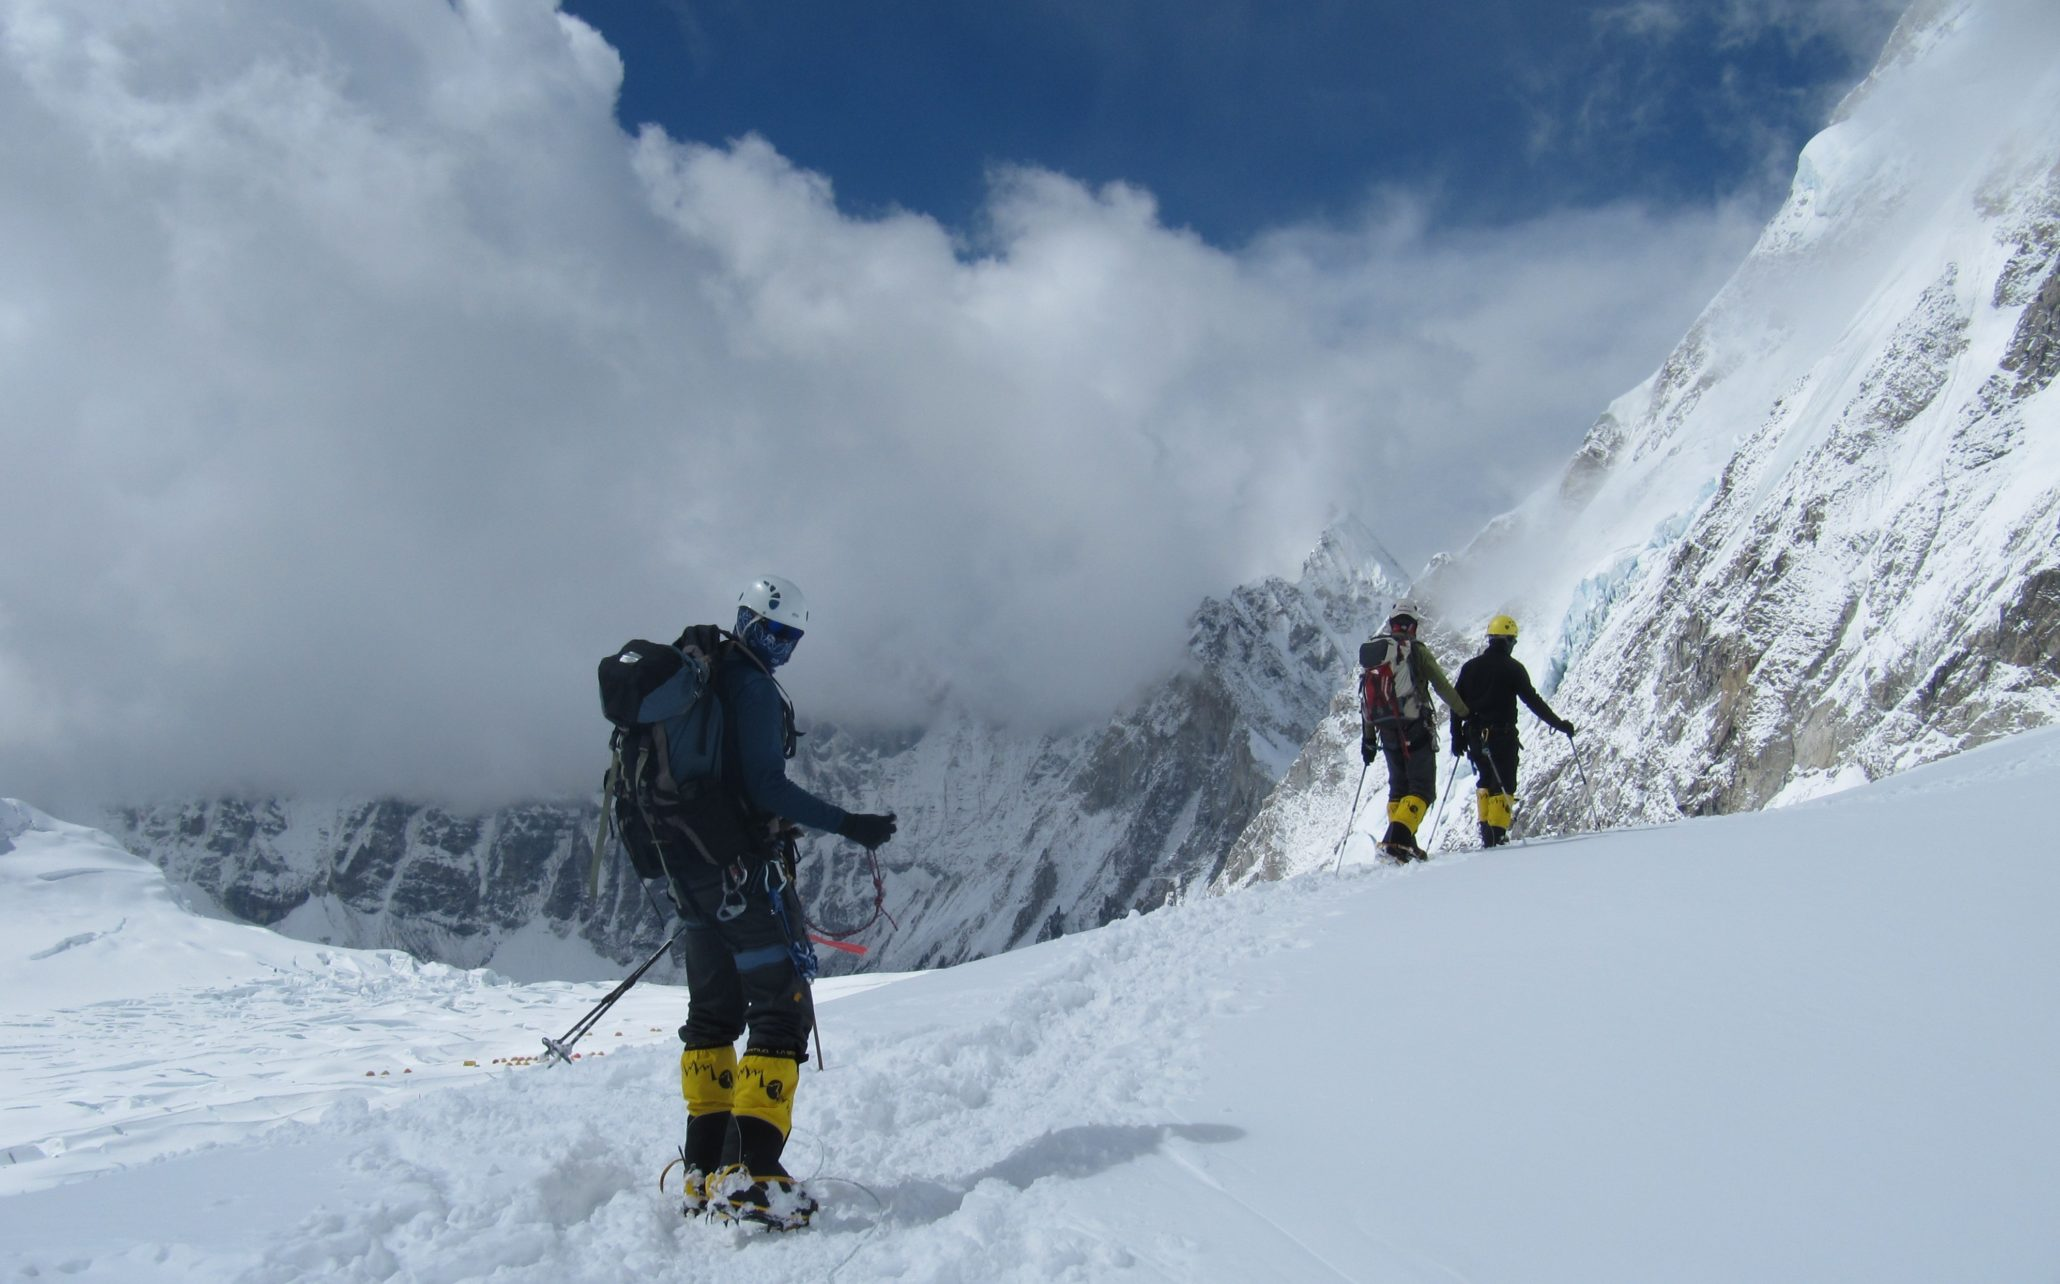 3 trekkers at the top of a mountain covered with snow